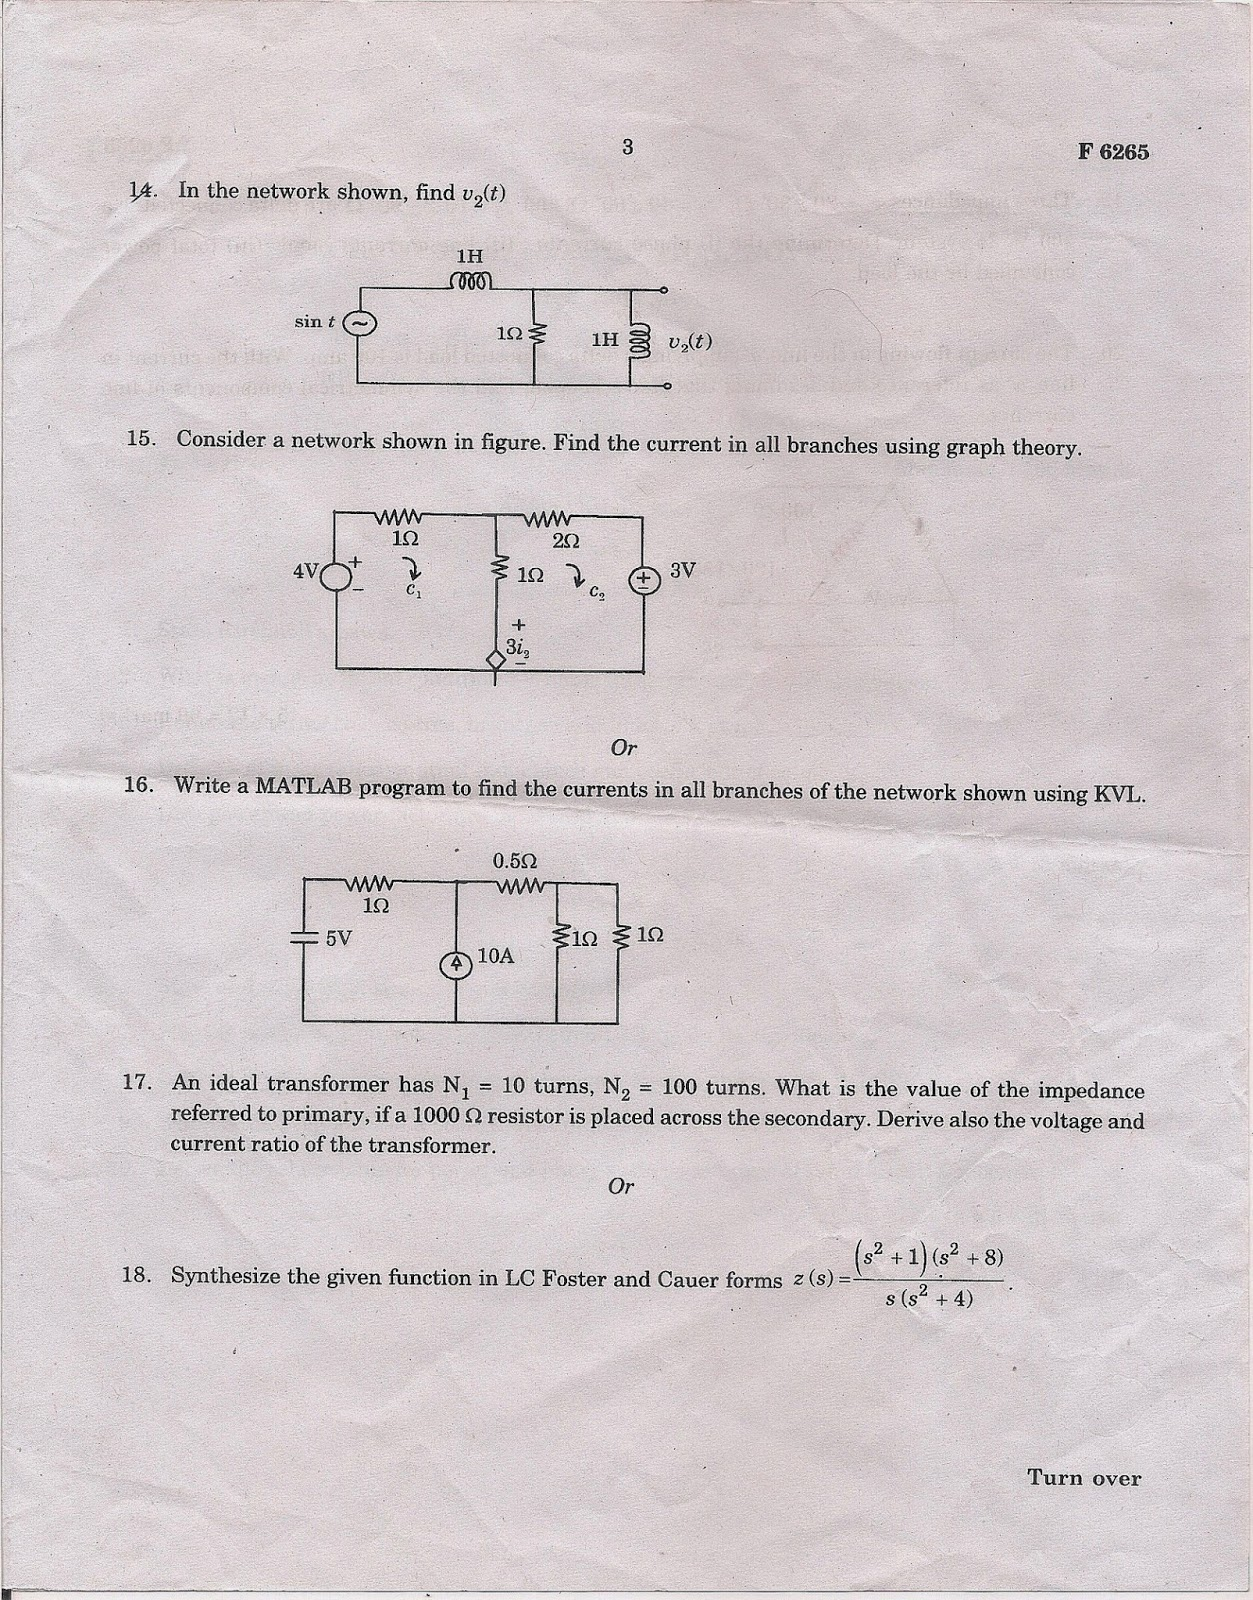 Mg University Question Papers Btech Eee Electrical Technology Pinterest Electric Circuit And Html Posted By Geoster16 At 1014